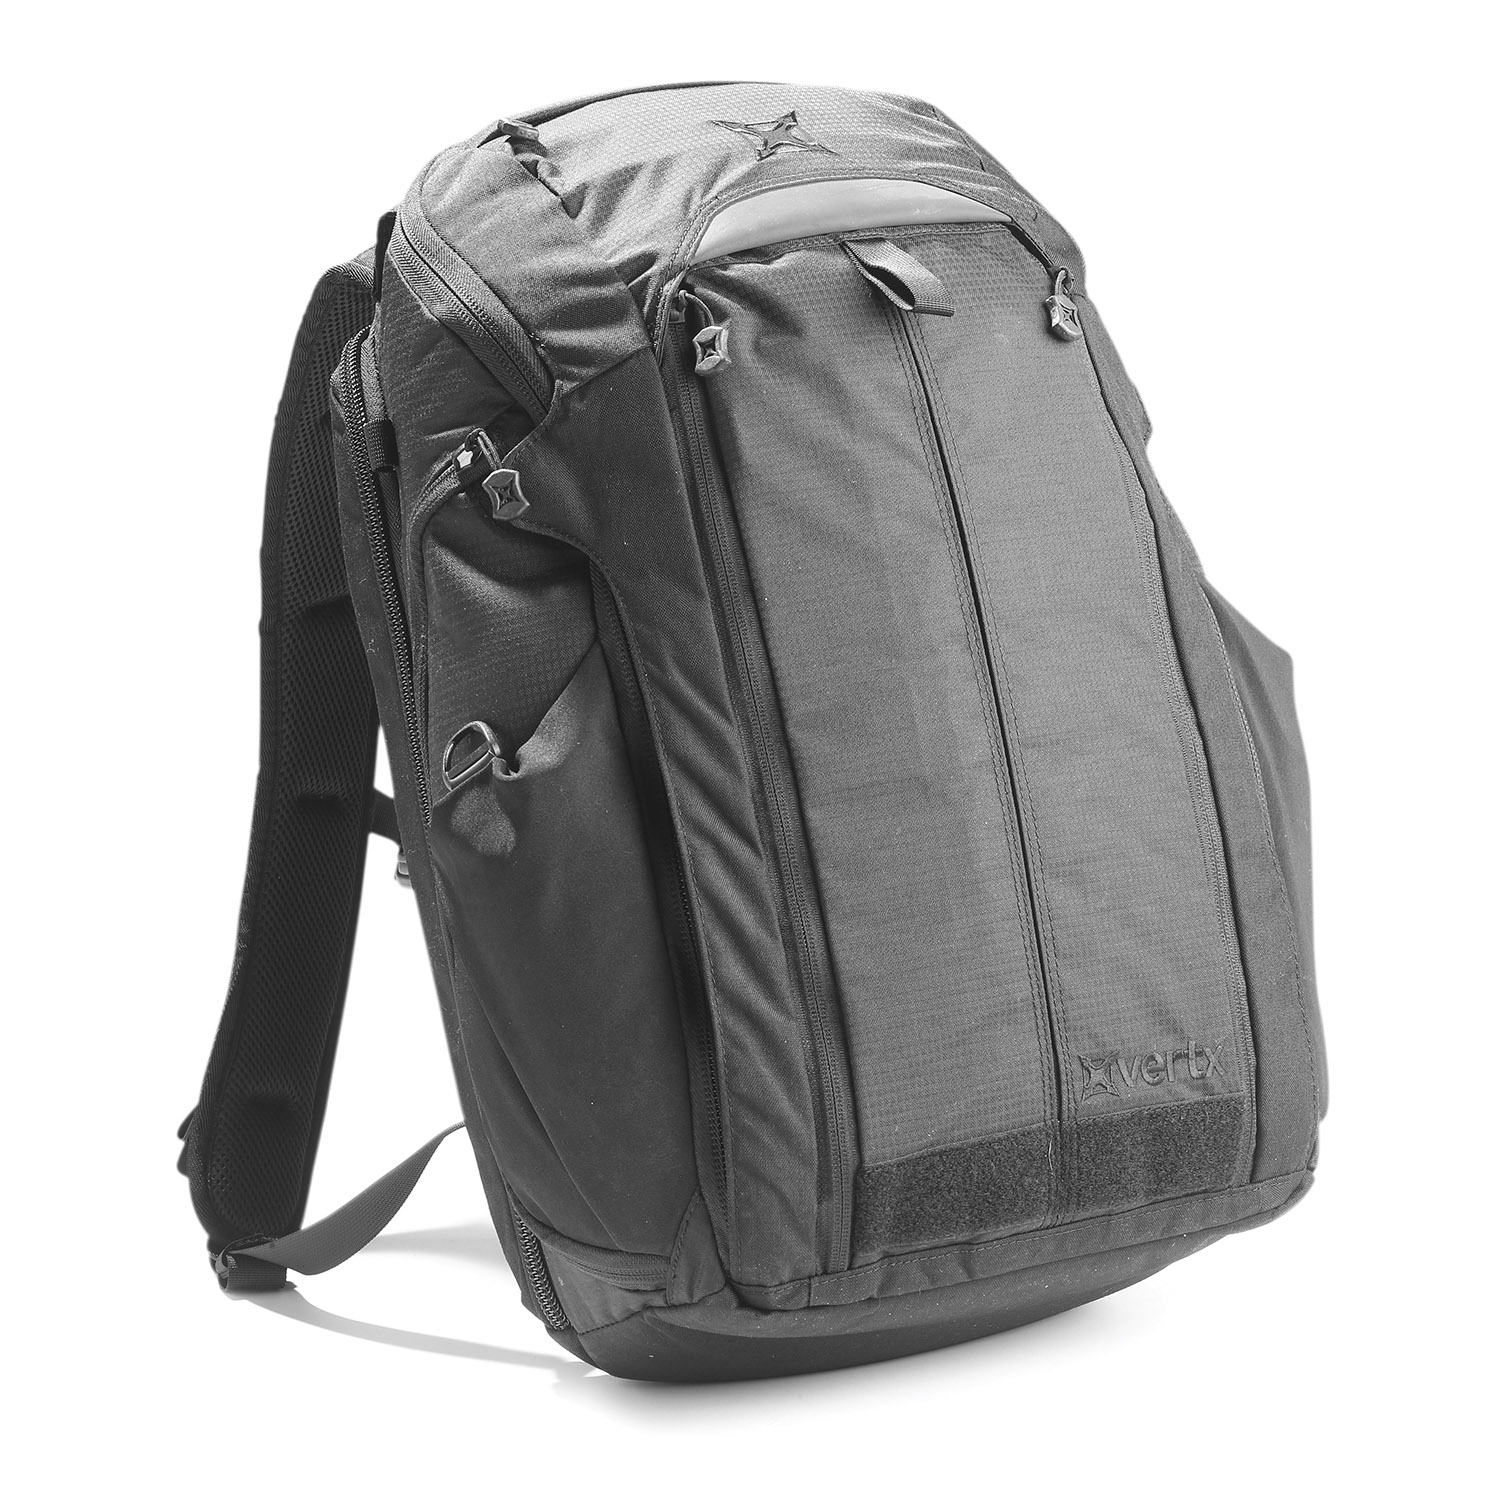 Vertx Everyday Carry Gamut Bag